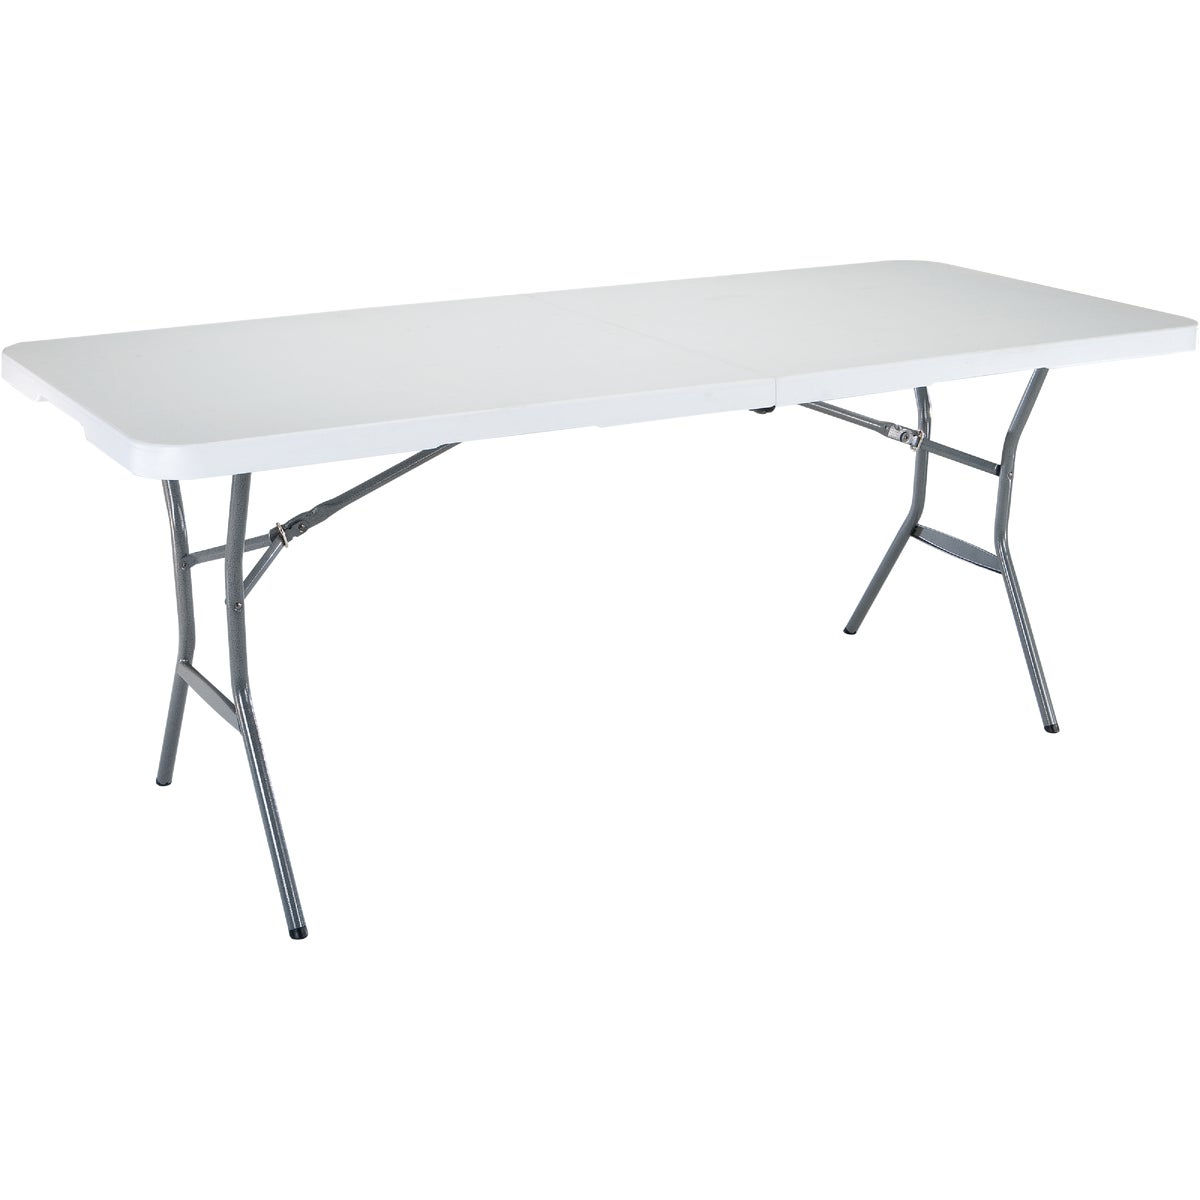 6FT FOLD-IN-HALF TABLE - 5011 by Lifetime  Xiamen